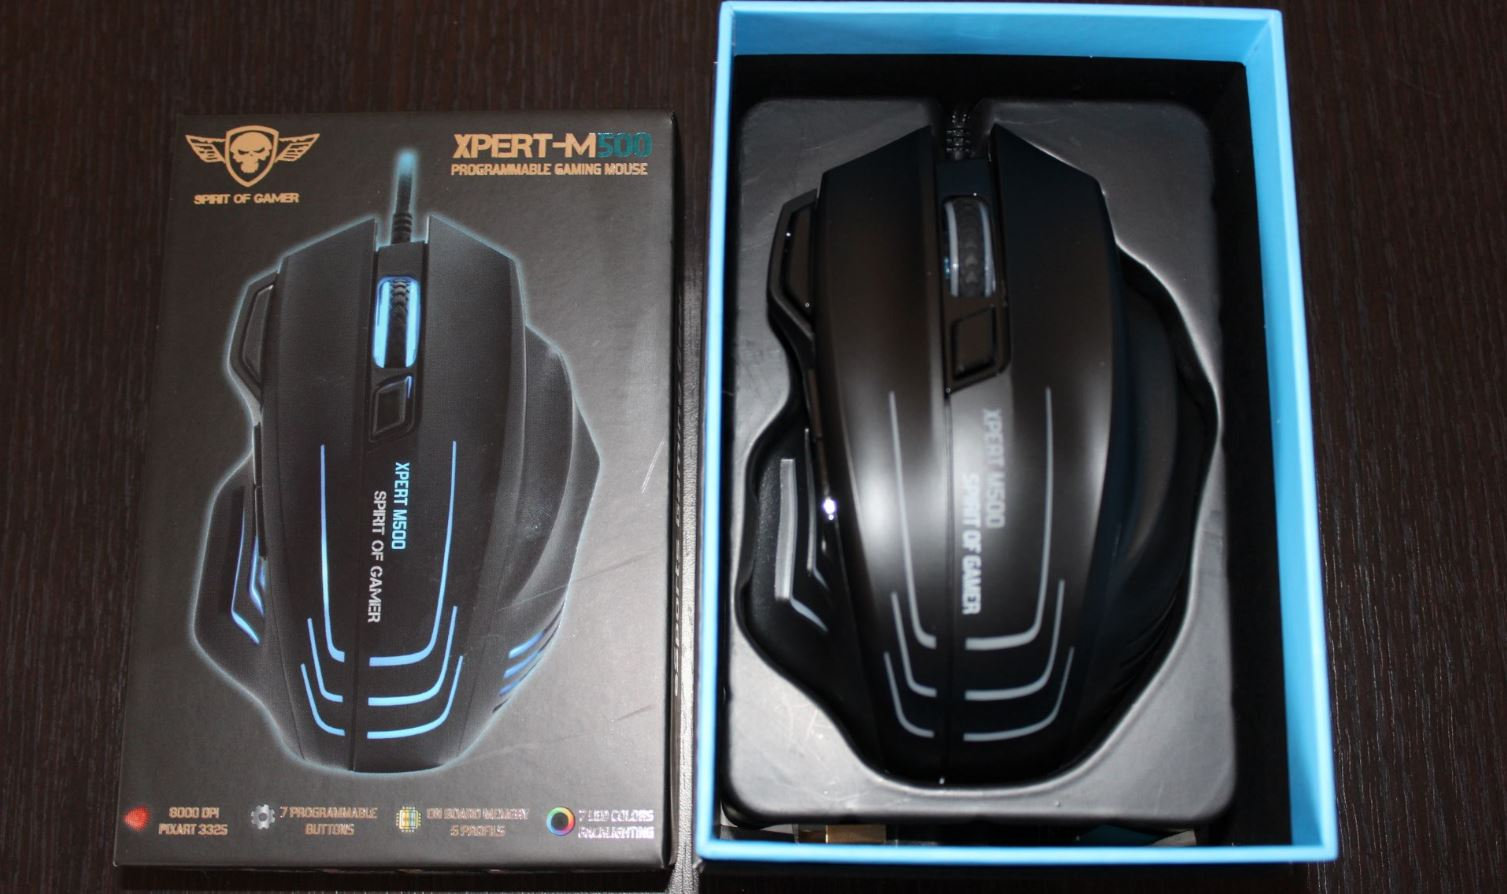 Test Souris gaming Spirit of Gamer XPERT M500 screen3